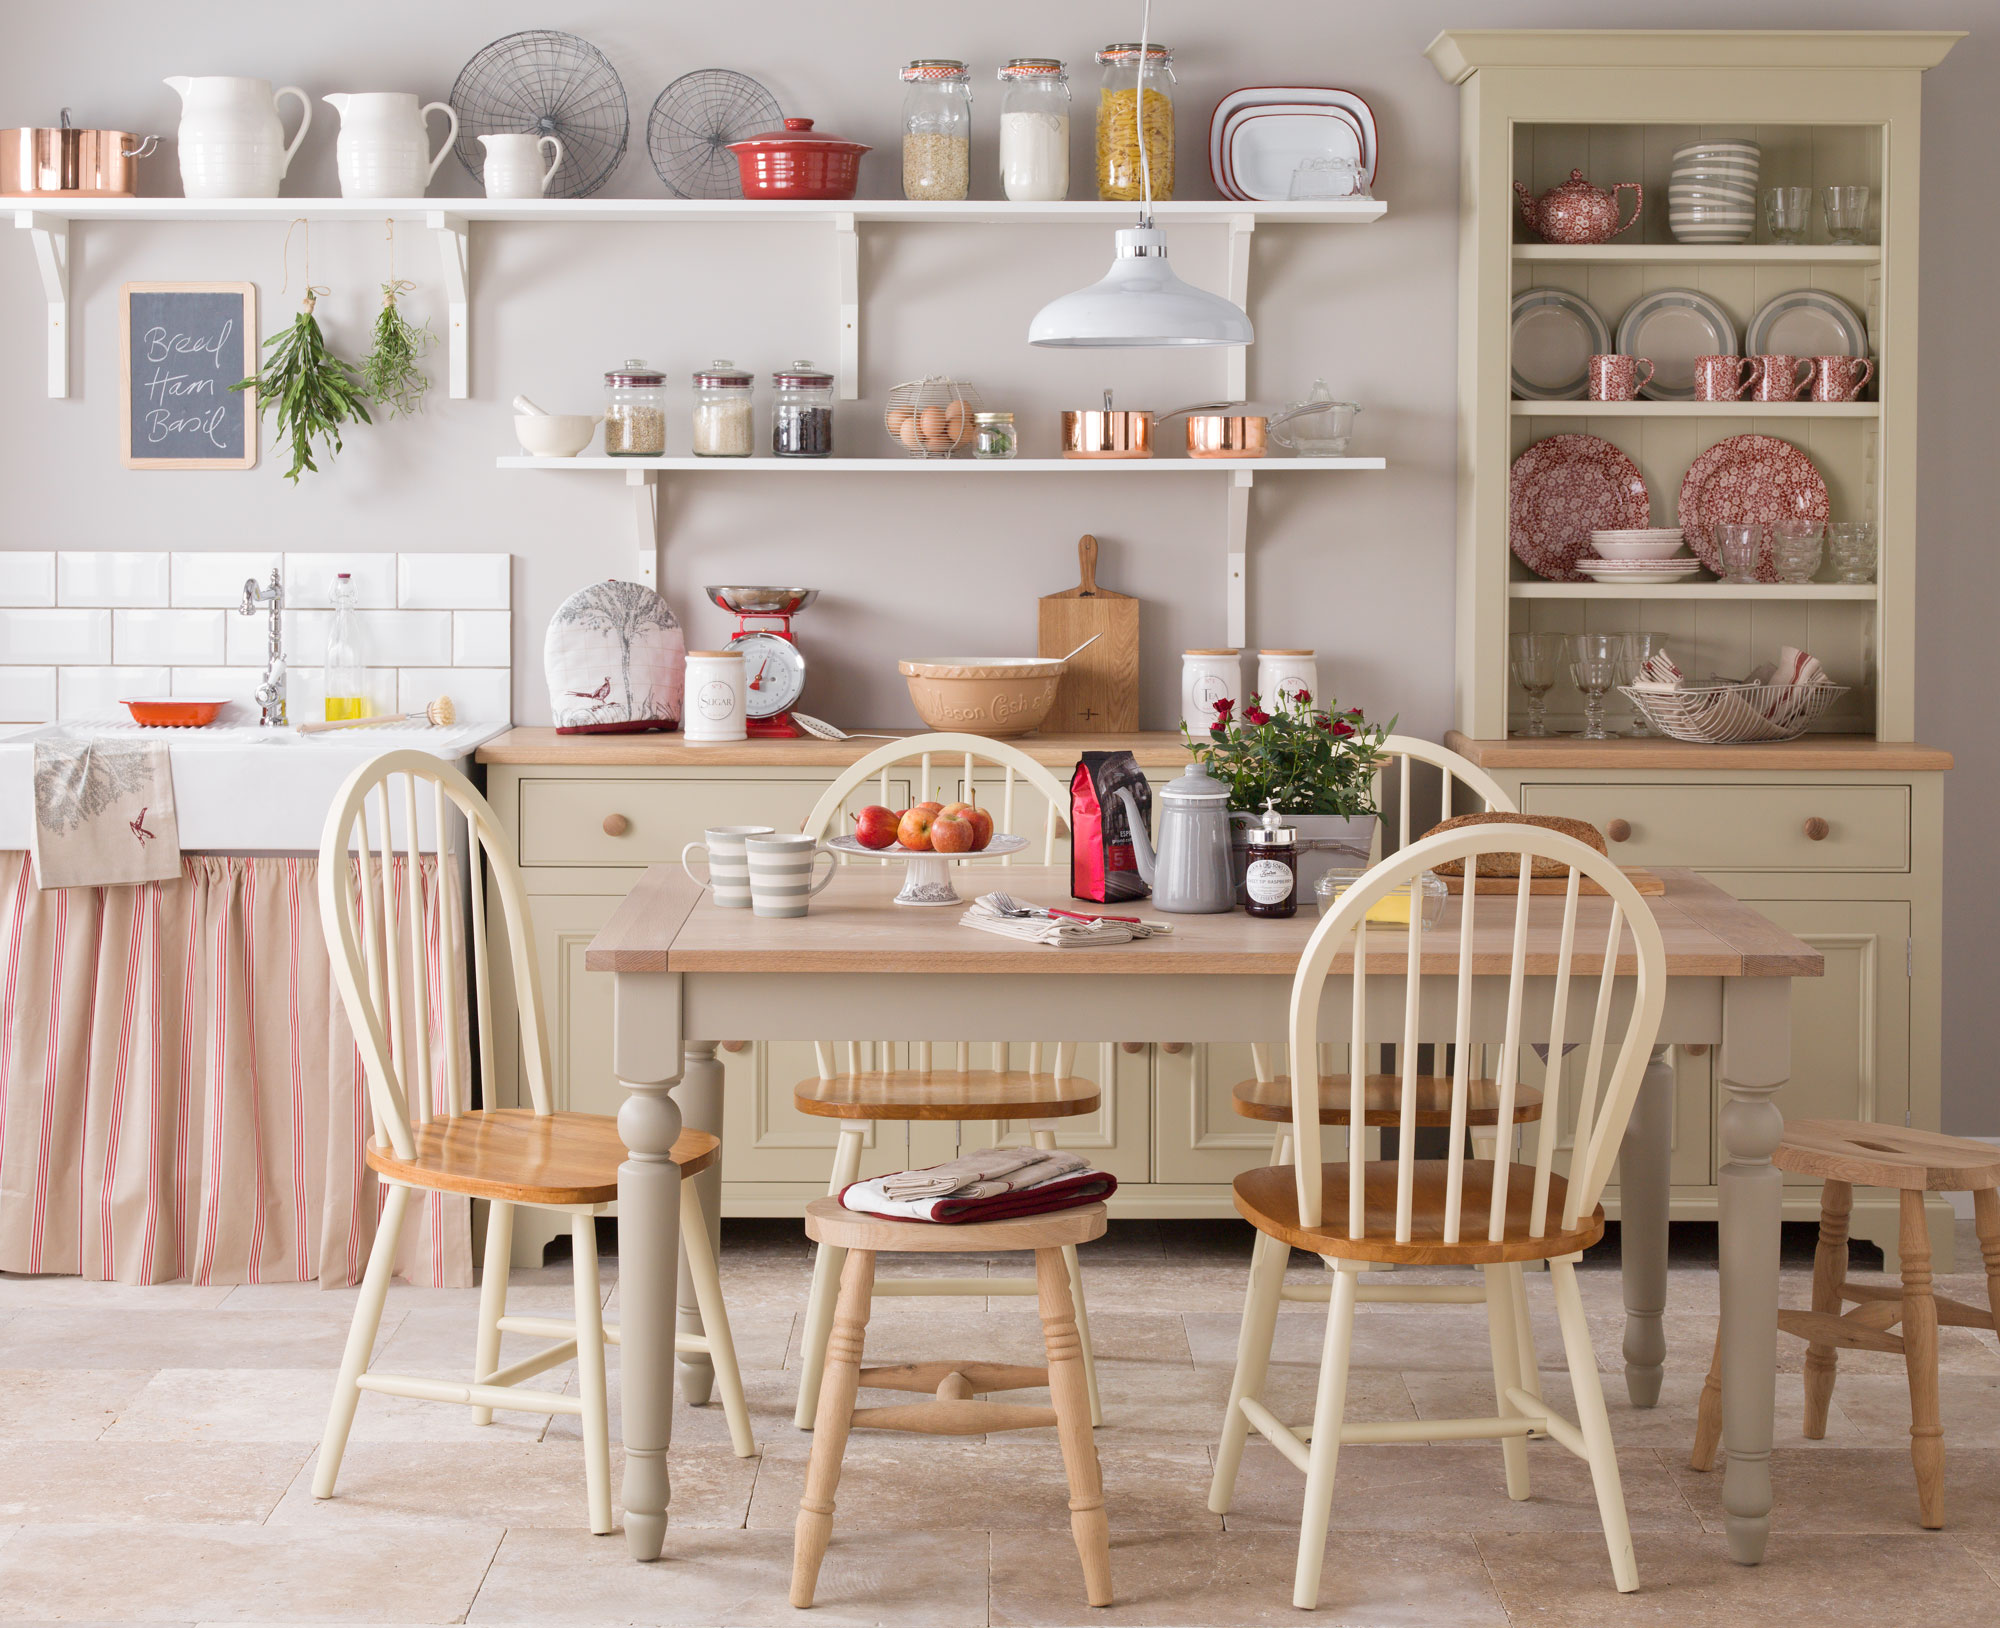 What You Should Know About French Country Kitchen Design additionally Country Kitchen Decorating Ideas furthermore Landhauskuche 16547 likewise Kitchens besides 87186942755883675. on country style kitchens